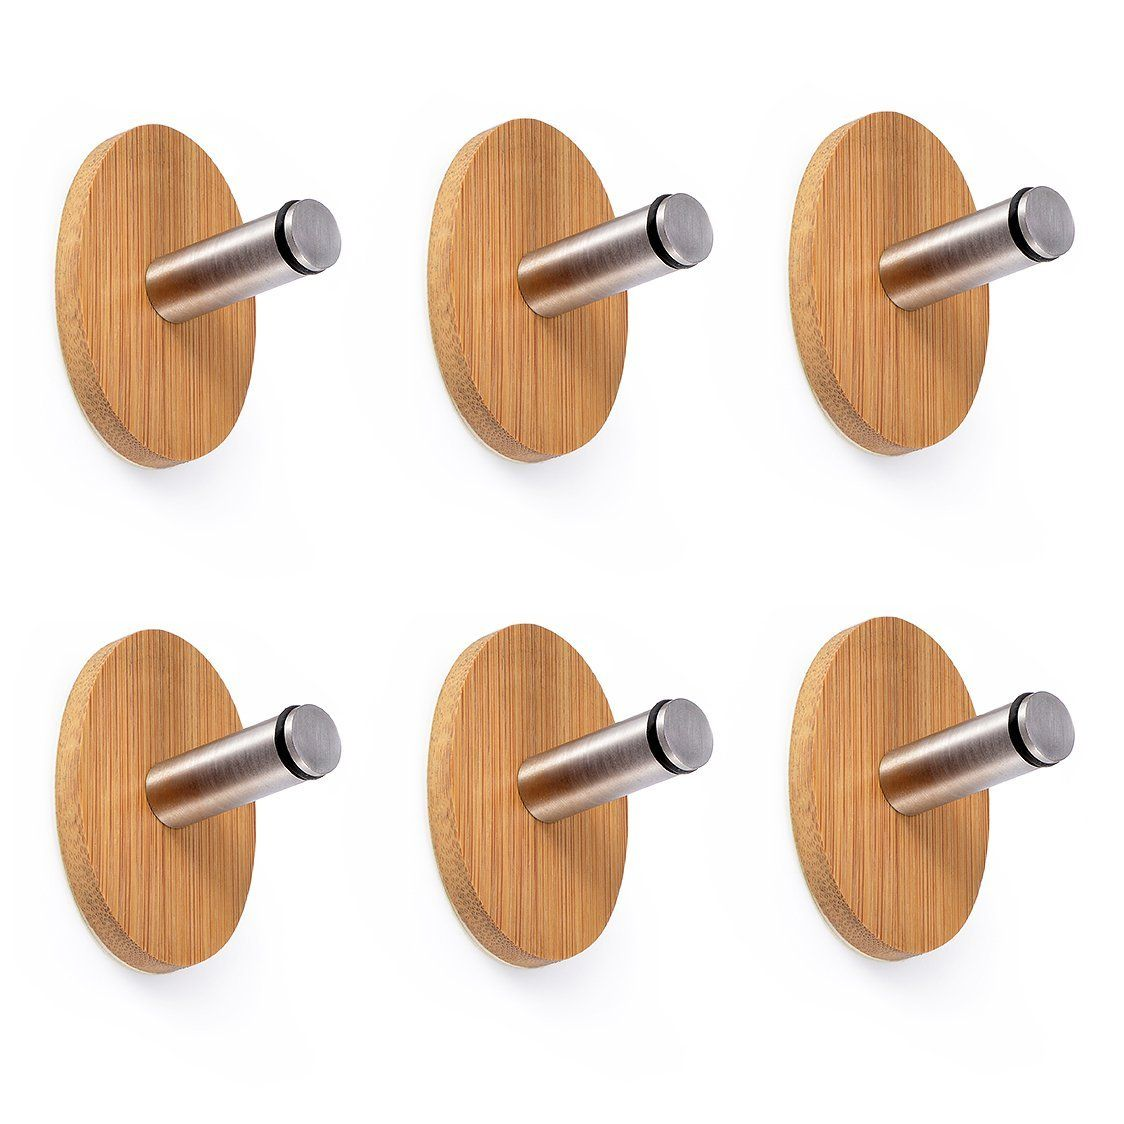 Adhesive Hooks, Oak Leaf 6 PCS Heavy Duty Wood &Stainless Steel Decorative  Stick Wall Hooks Clothes Hangers for Home Kitchen Coats Hats Keys Bags